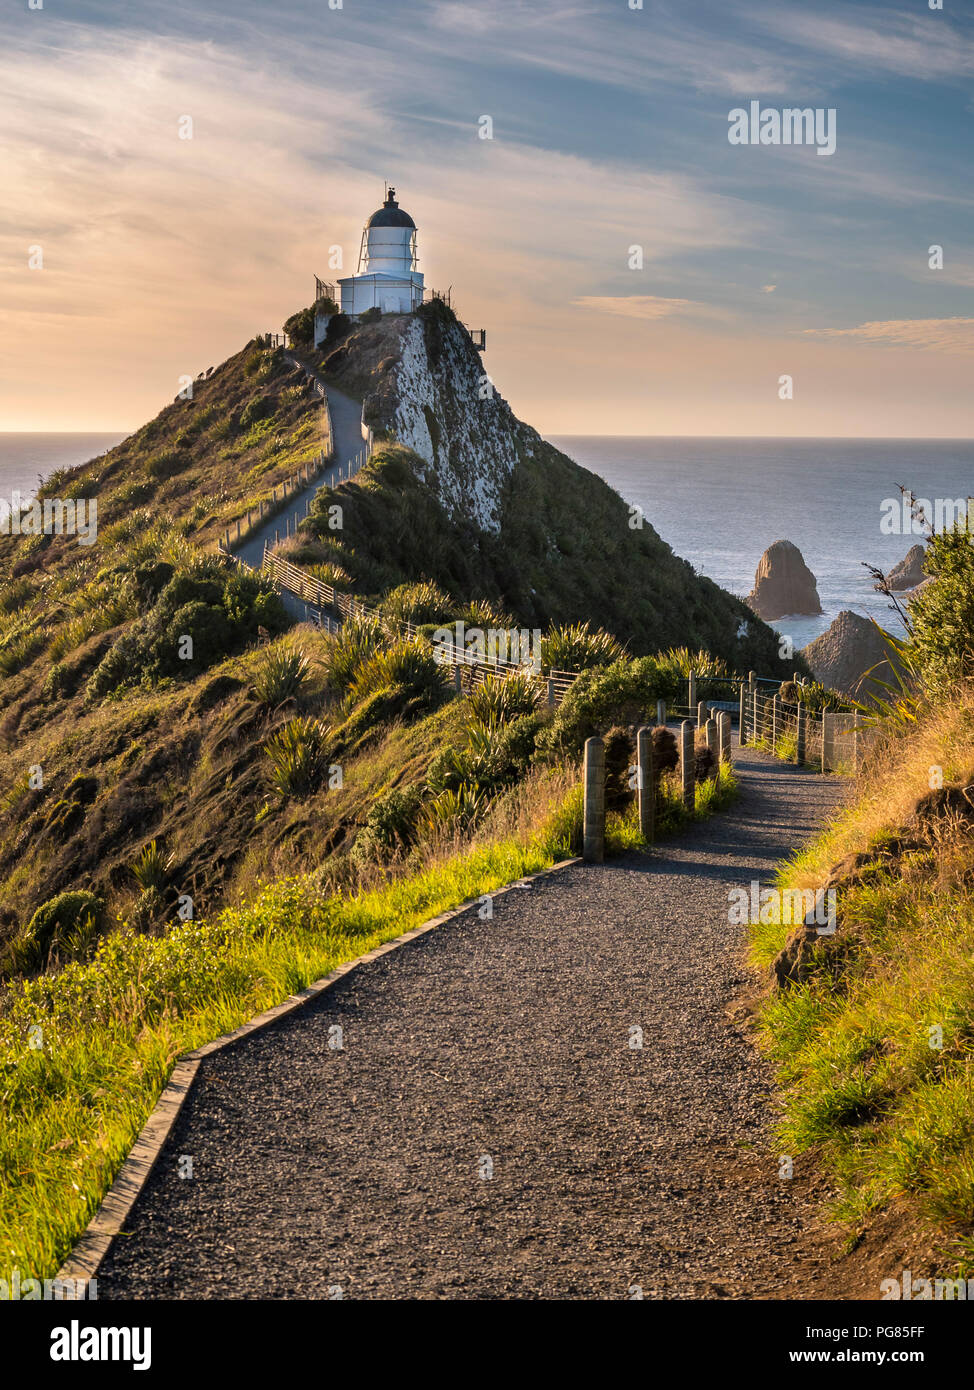 New Zealand, South Island, Southern Scenic Route, Catlins, Nugget Point Lighthouse - Stock Image